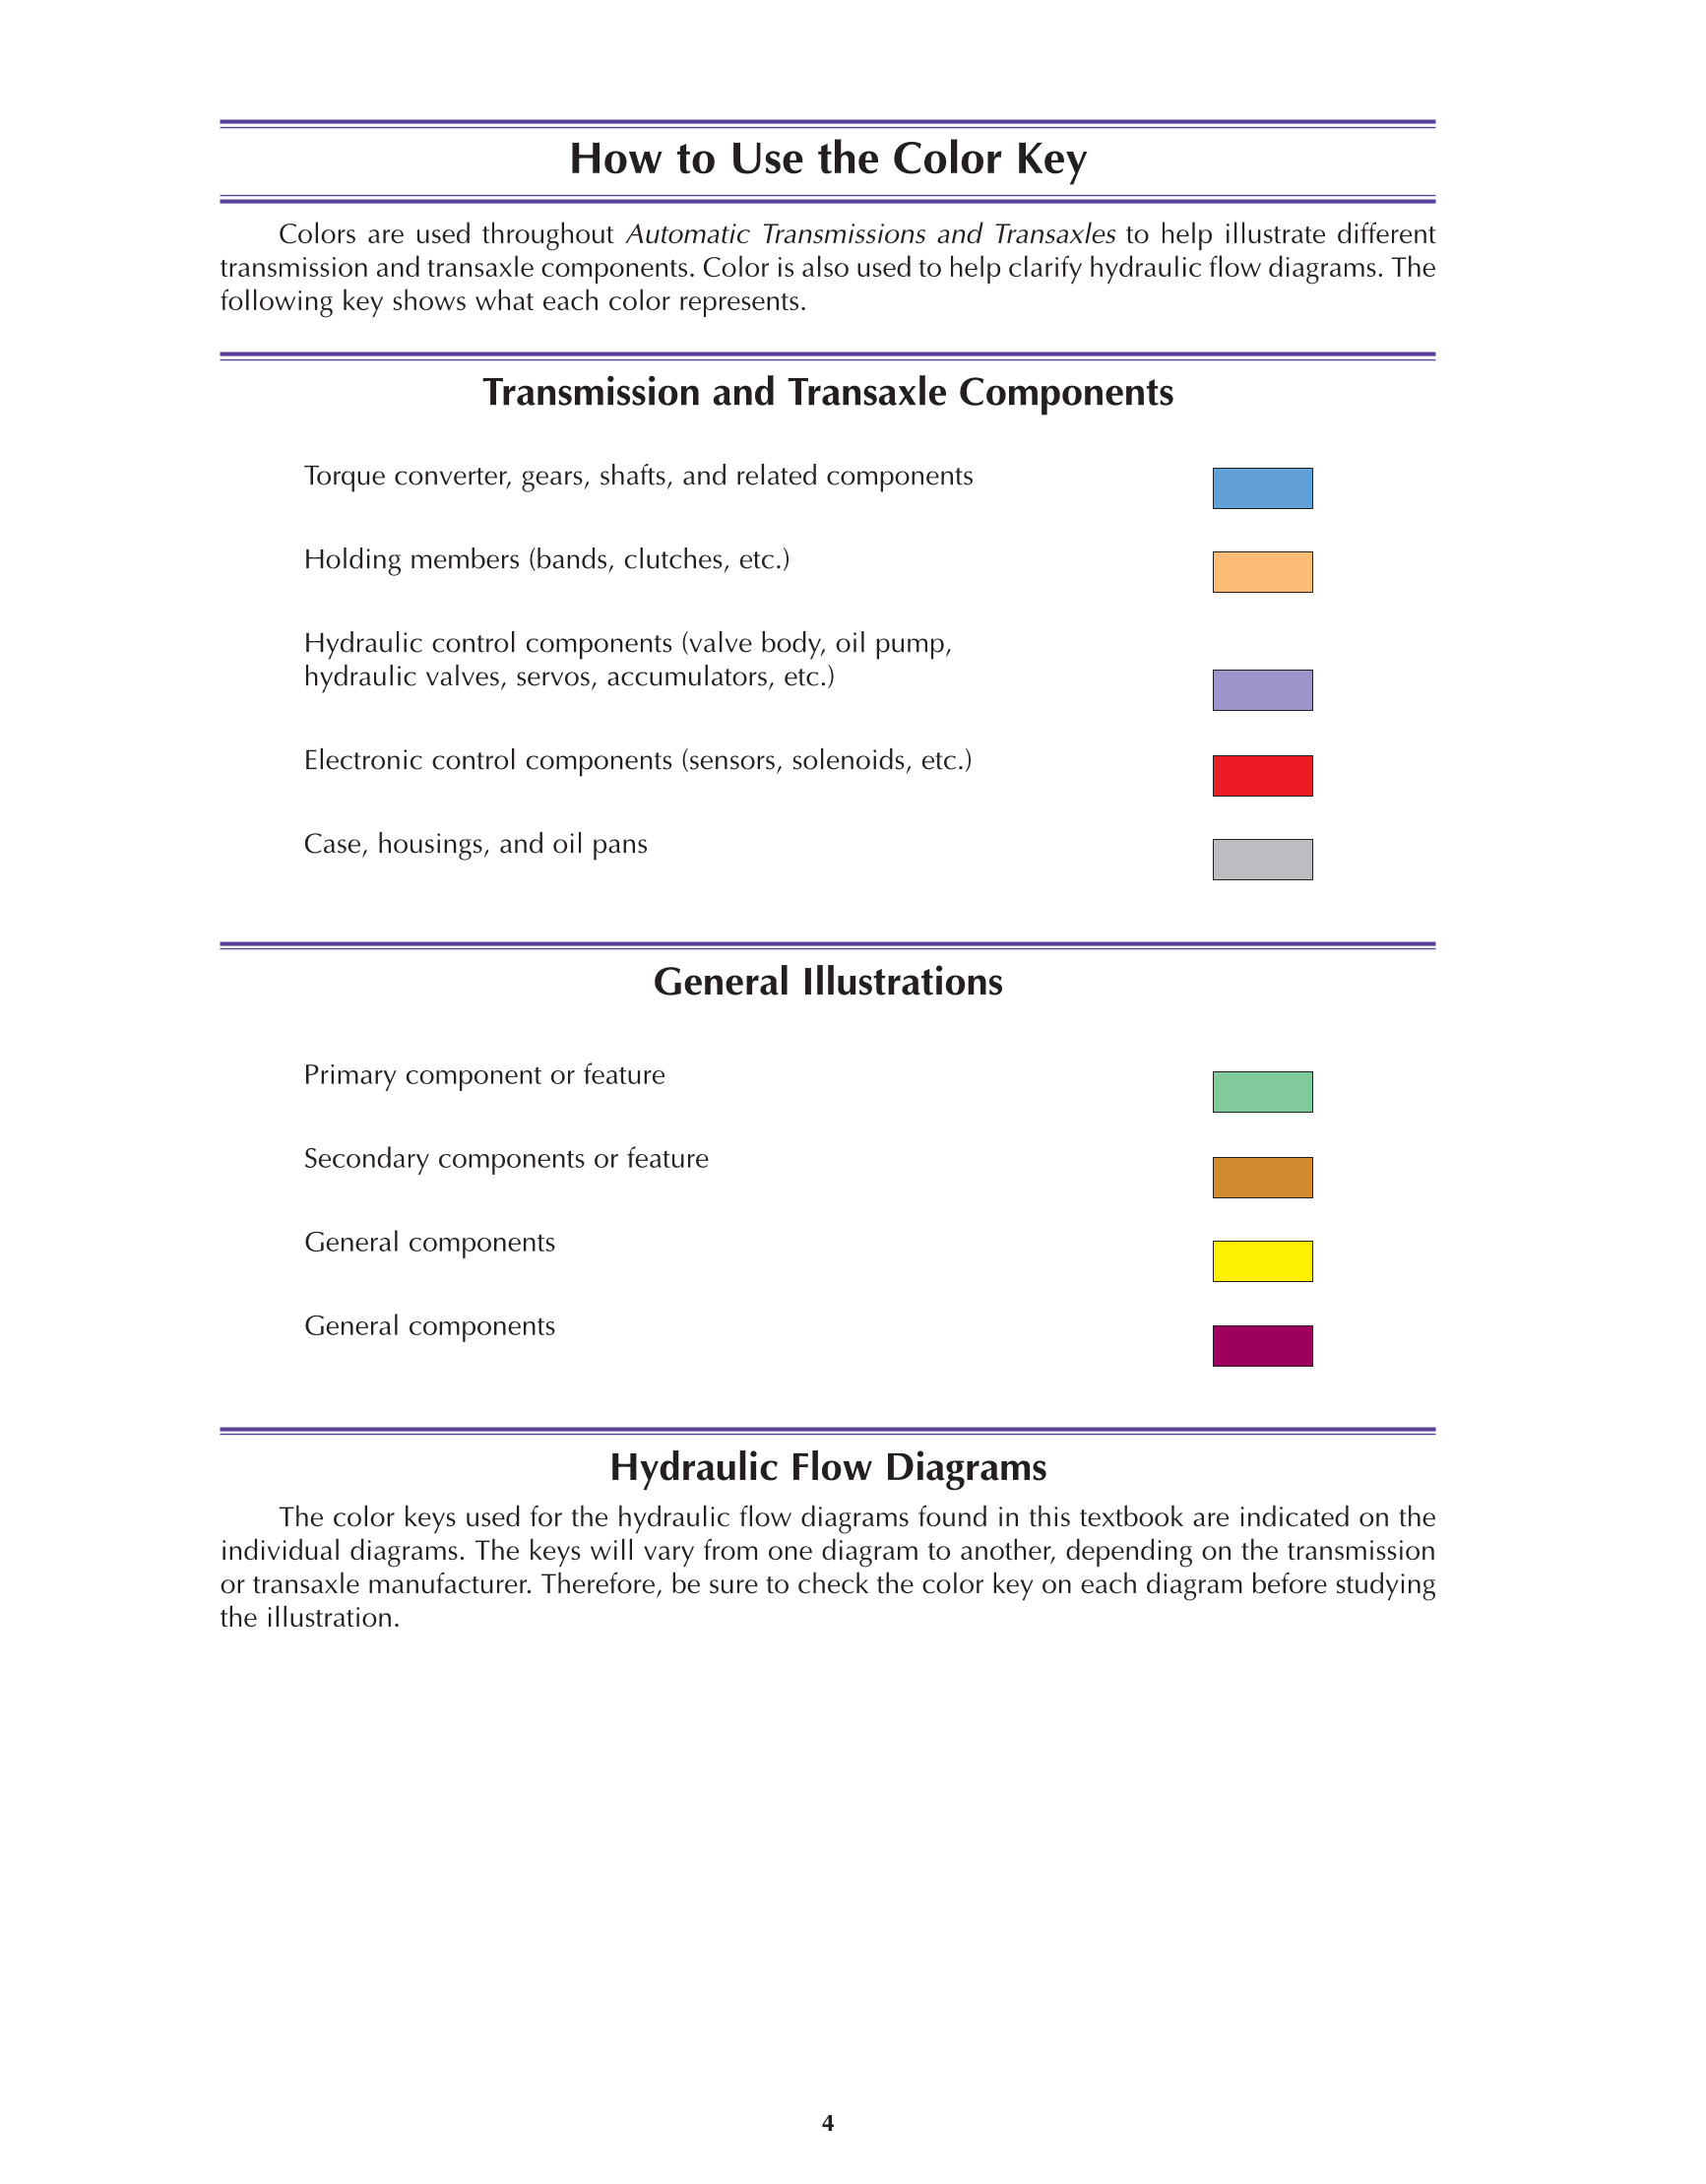 Printable: Automatic Transmissions and Transaxles, A2, 3rd Edition page 4.